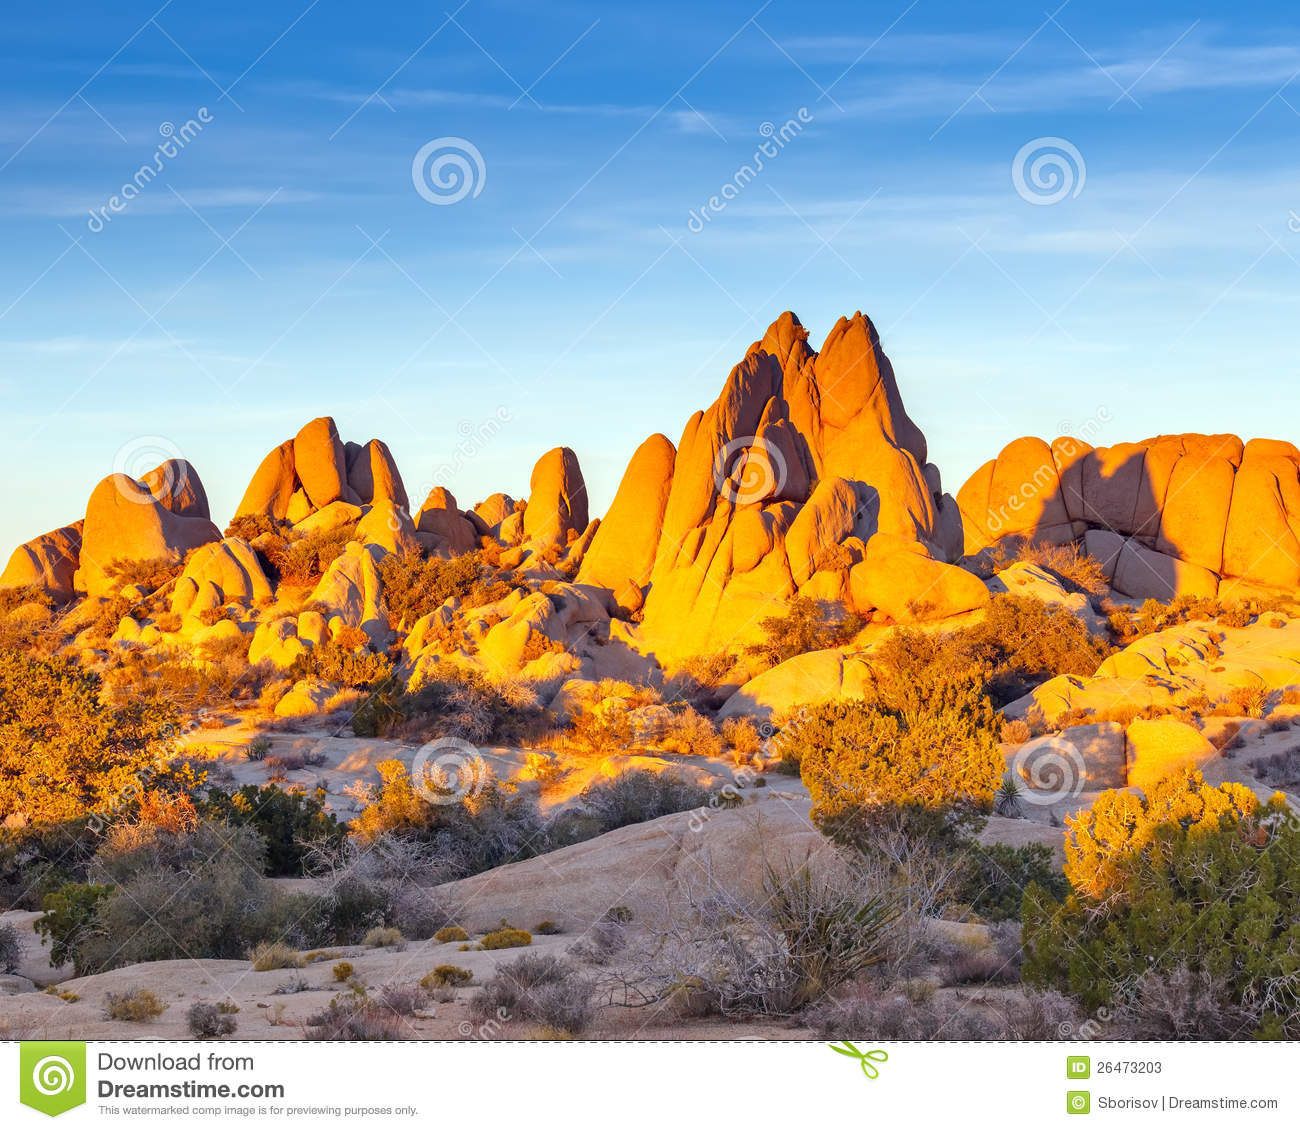 Joshua Tree National Park clipart #3, Download drawings